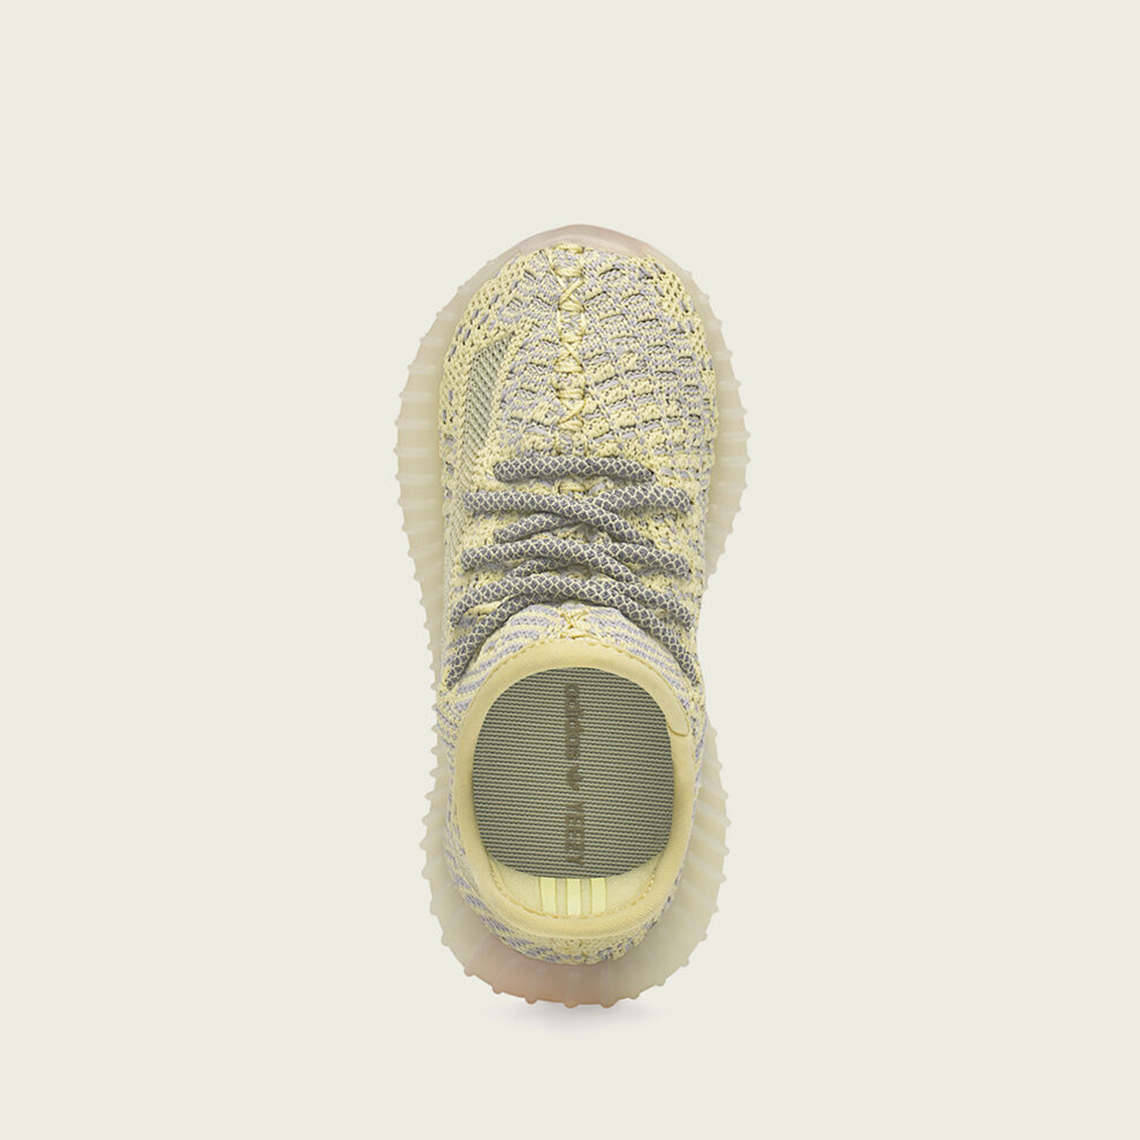 "7dfa98bb912 adidas Yeezy Boost 350 v2 ""Antlia"" (Infants) Release Date: June 22nd, 2019  $140. Style Code: FV3245. show comments"